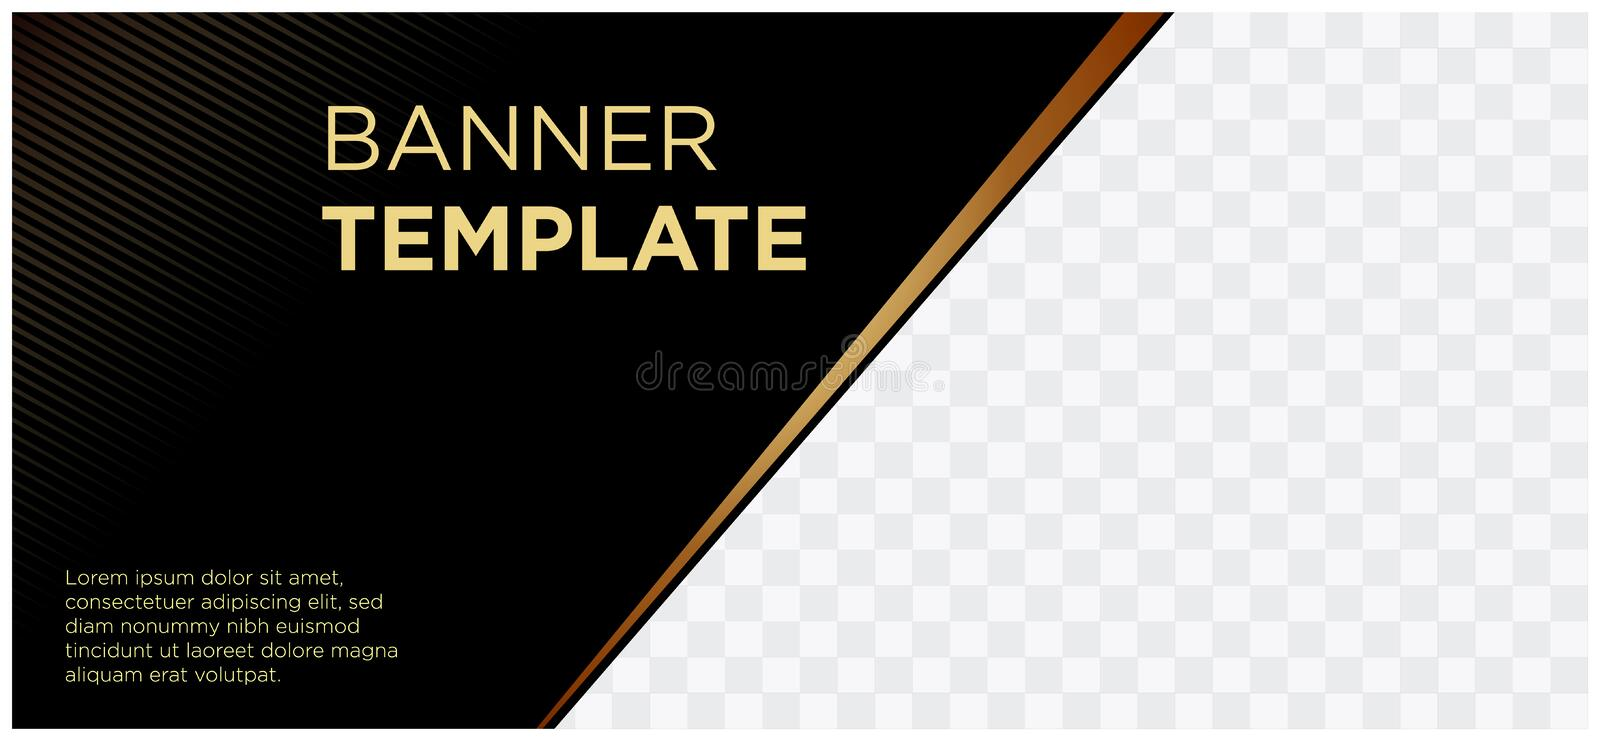 Banners black and gold header website company commercial landscape-06. Banners black and gold header website company commercial landscape horizontal minimalist royalty free illustration